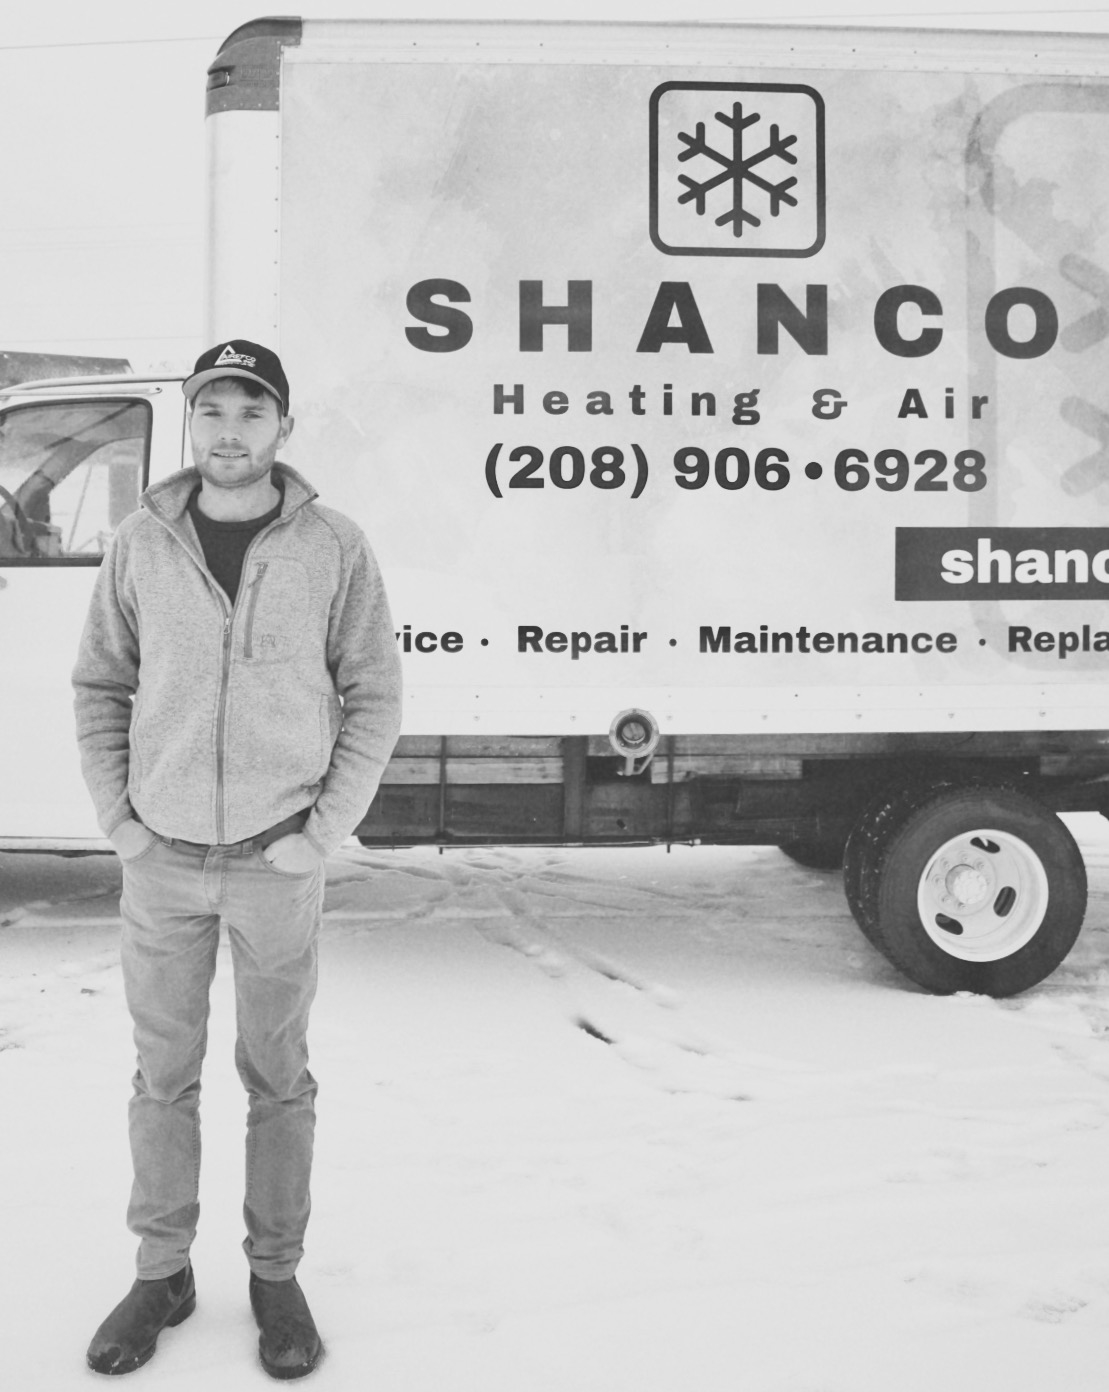 Shanco Heating And Air In Boise Id 83716